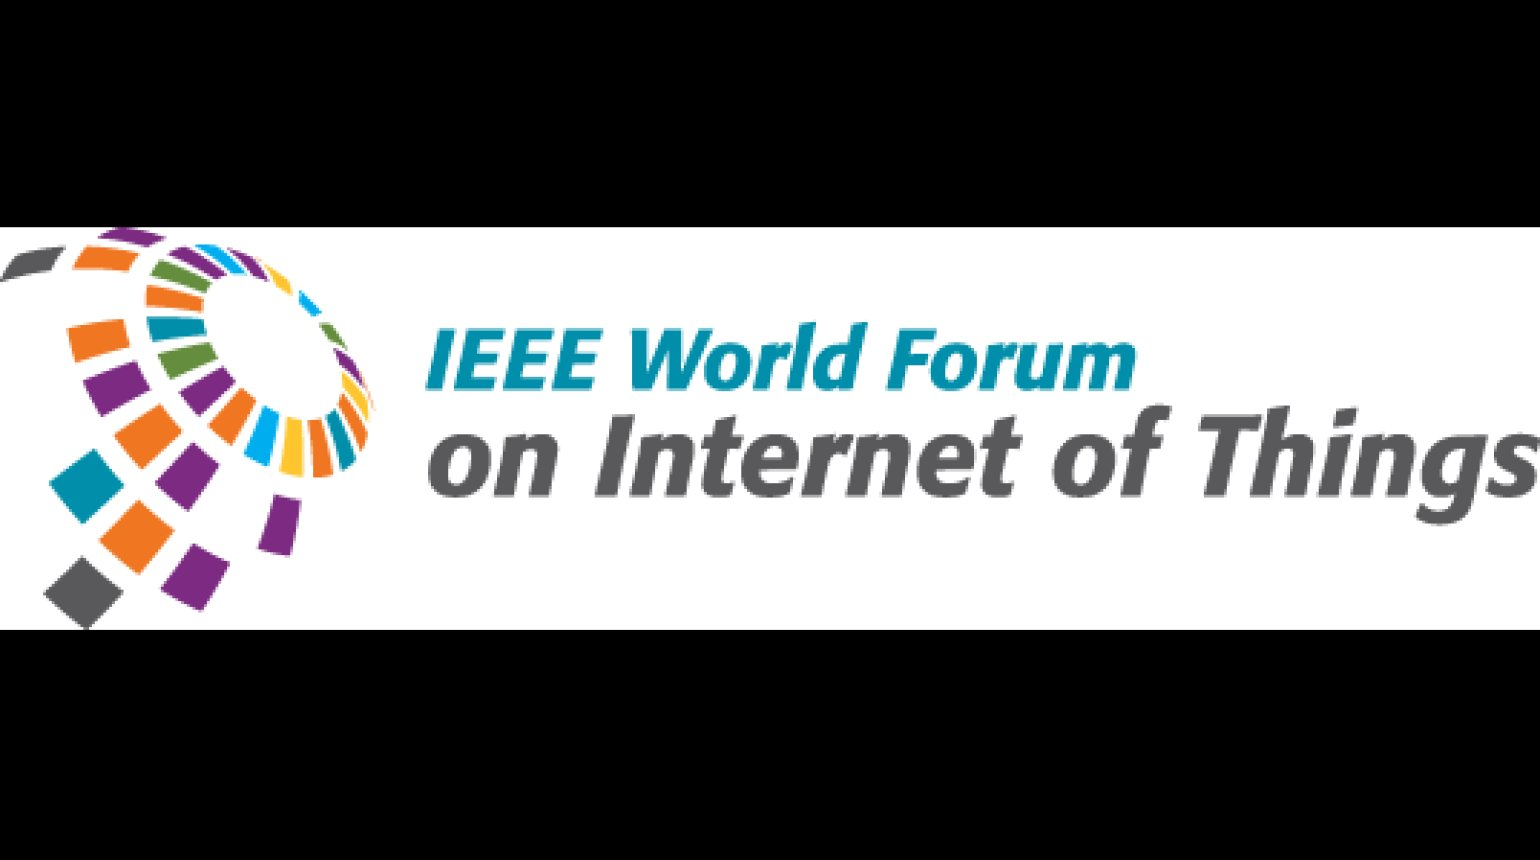 IEEE World Forum on Internet of Things Tutorials